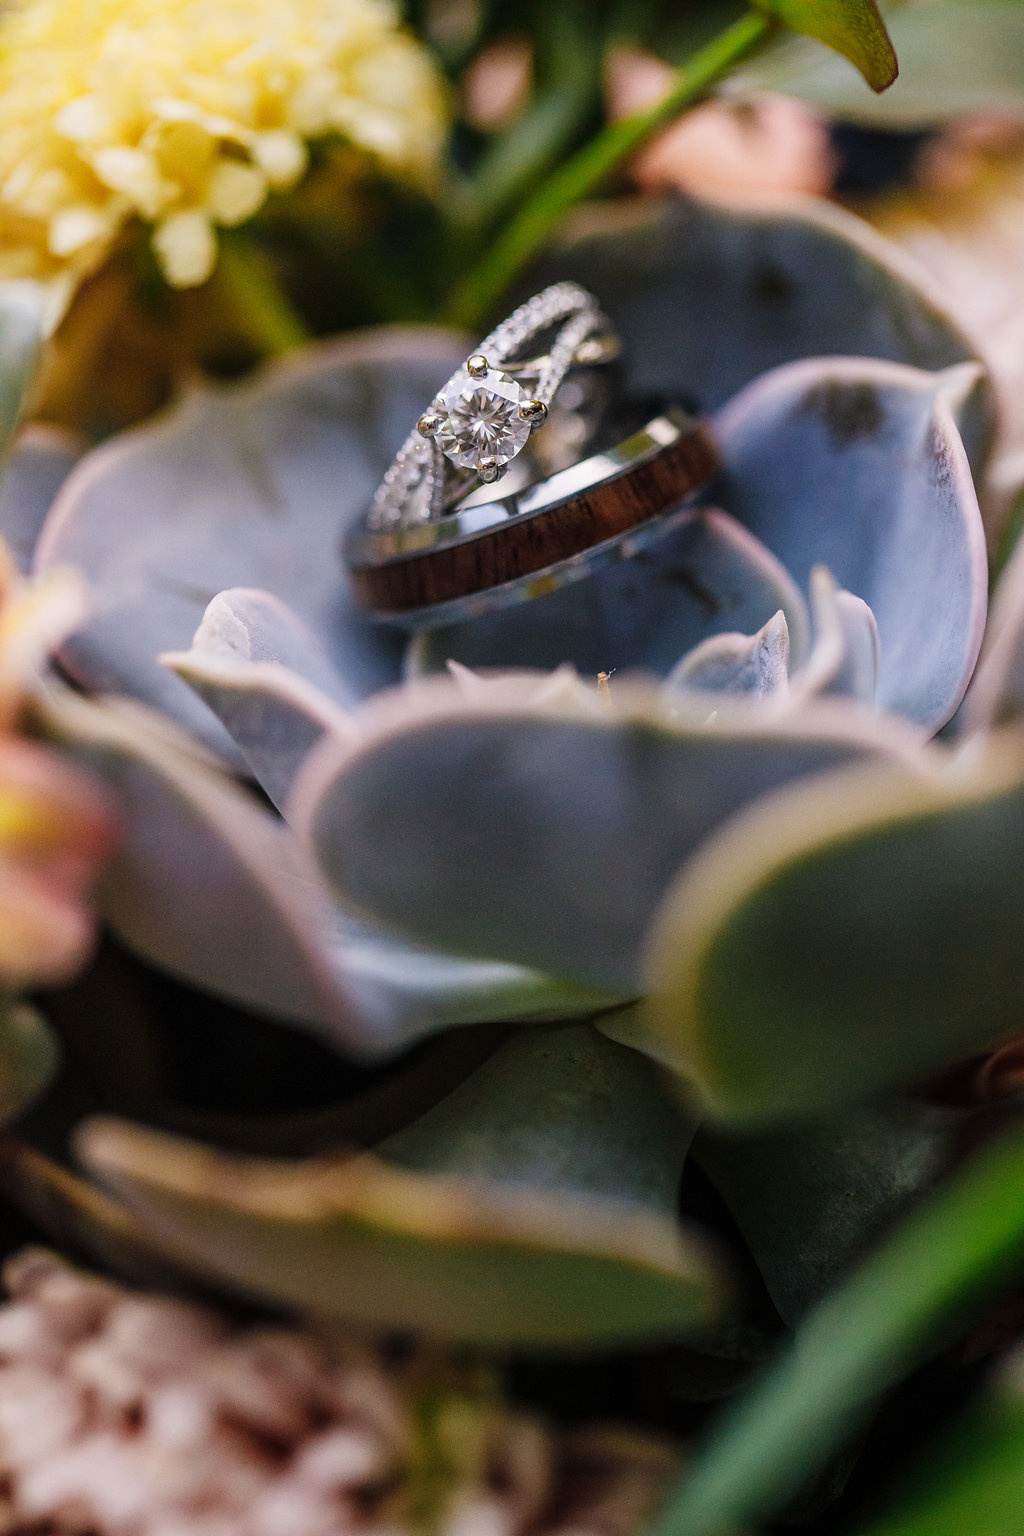 brielle-davis-events-photography-by-brea-linganore-winery-james-sarah-wedding-rings.jpg